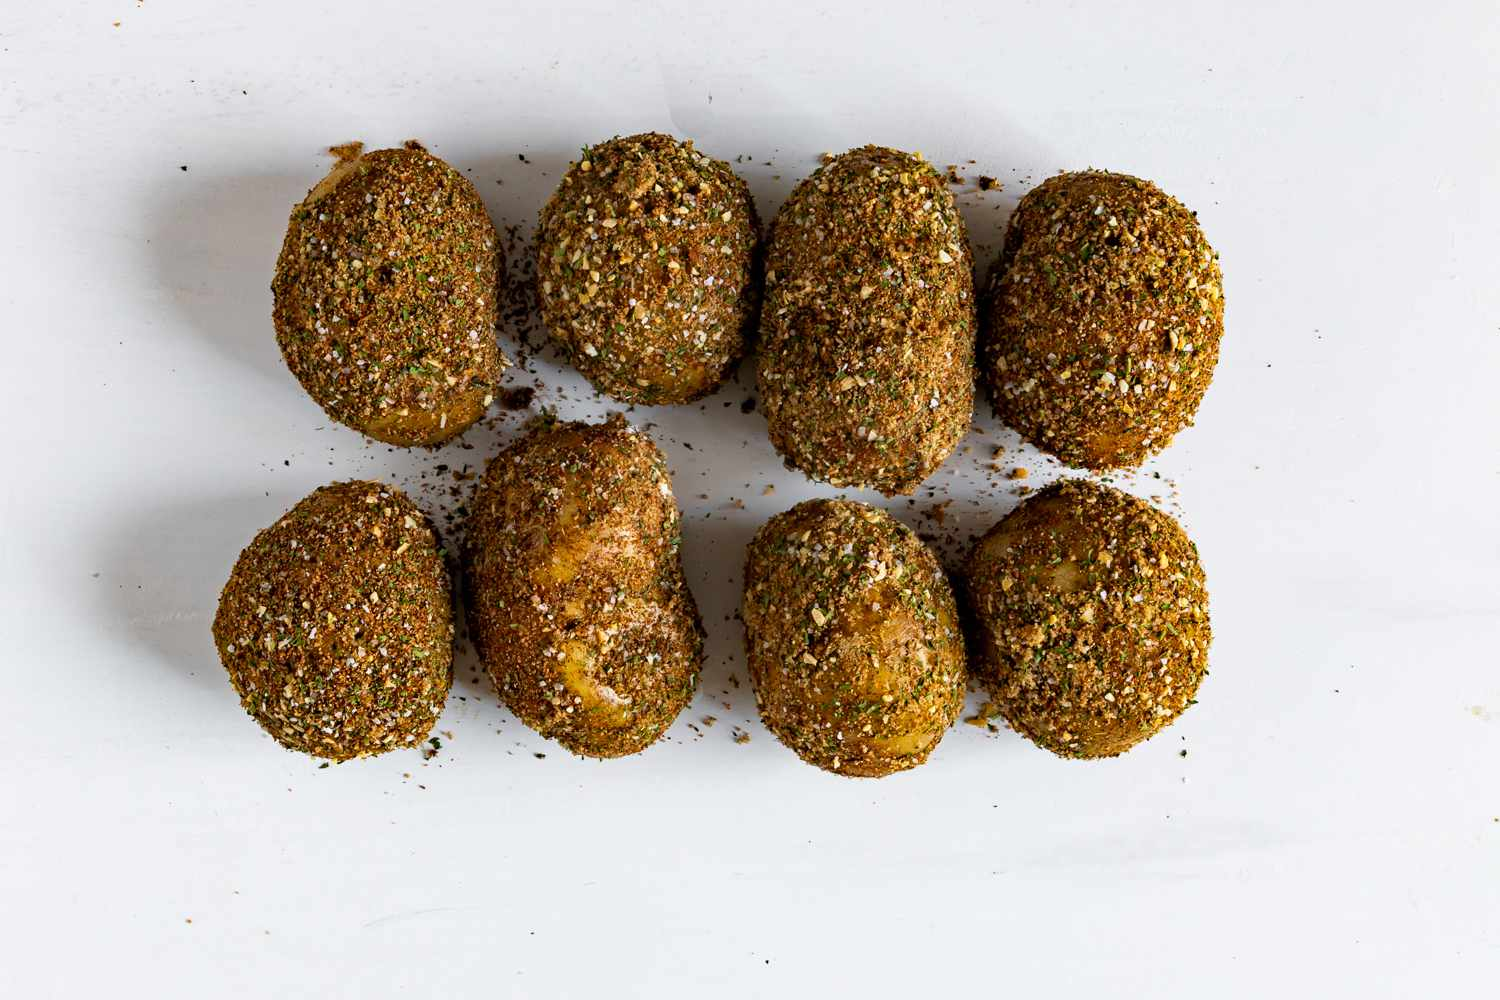 Potatoes covered with the herb and spice mixture